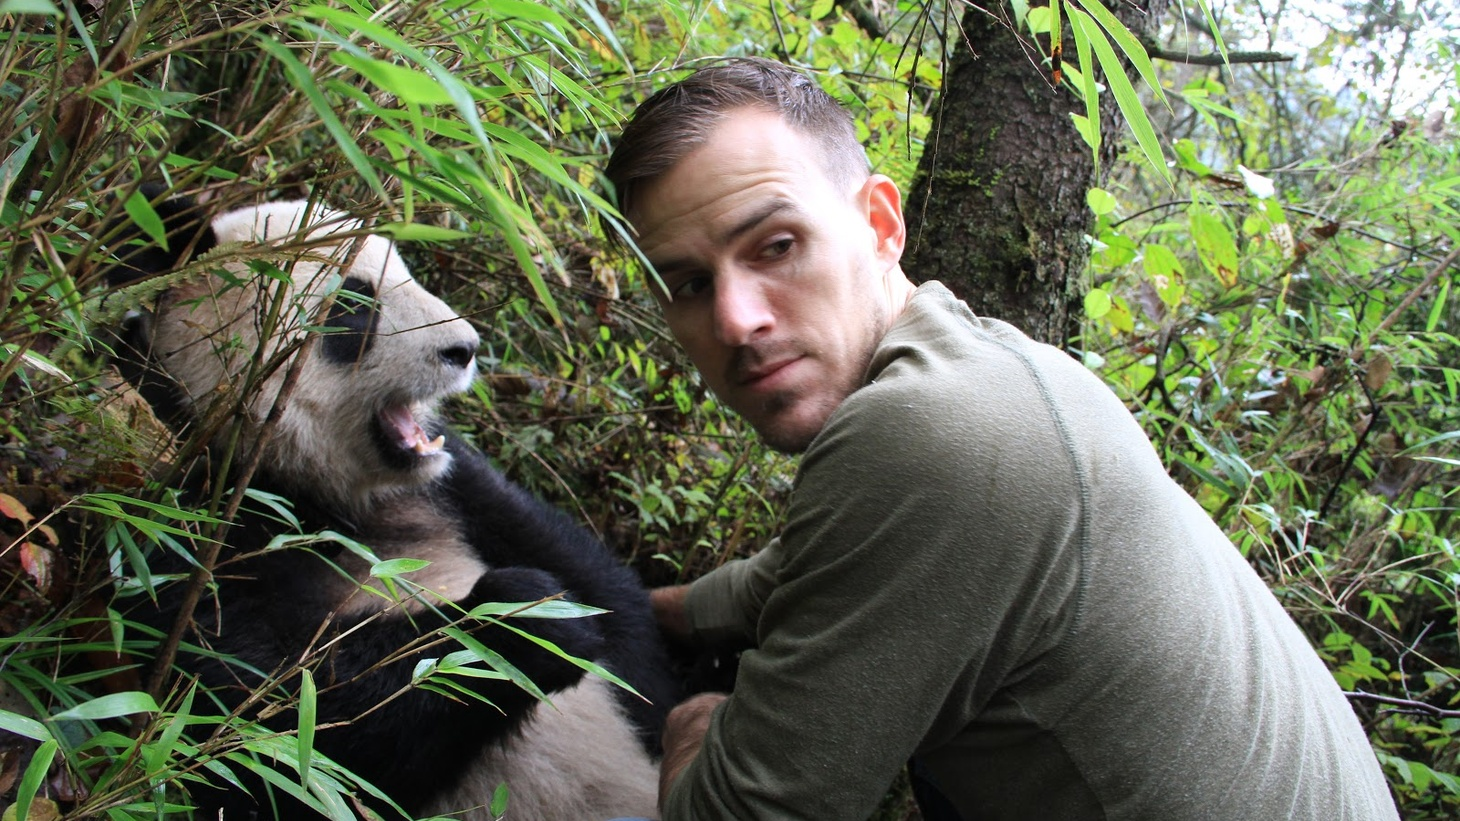 Jake Owens is the LA Zoo's first ever conservation director. He worked in China for five years helping to save giant pandas from extinction.